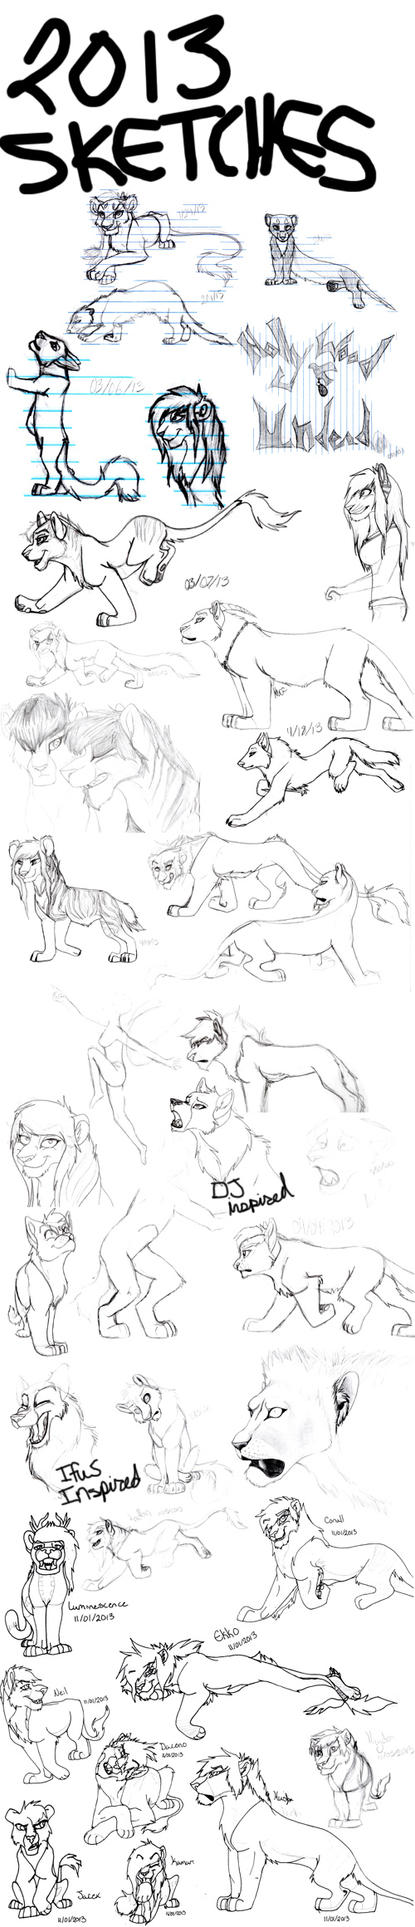 Traditional Sketch Dump 2013 by IzzyShea